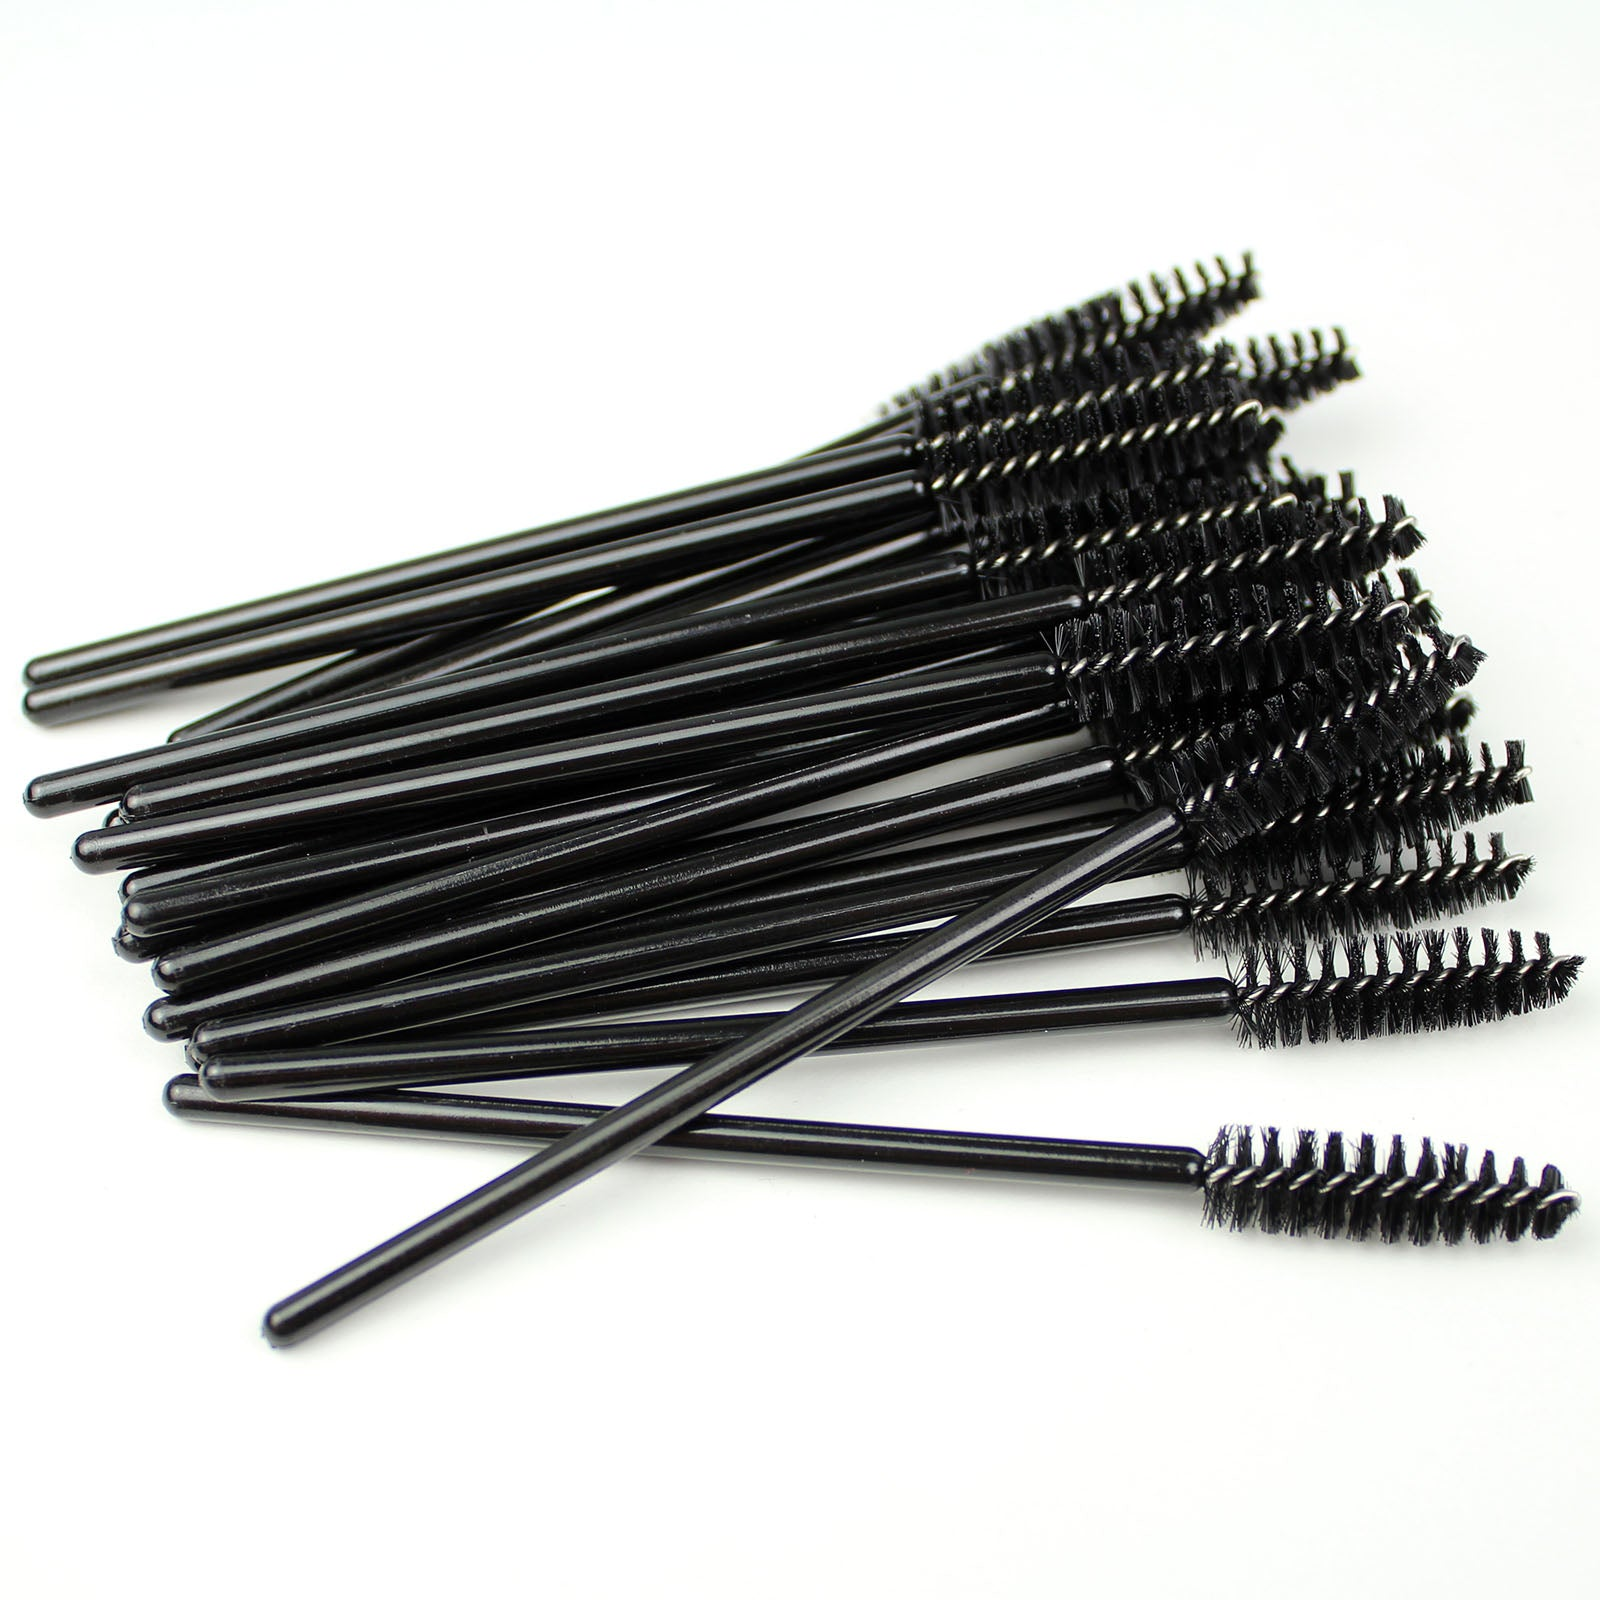 50 Disposable Eyelash Mascara Wand Brush for Makeup Applicator